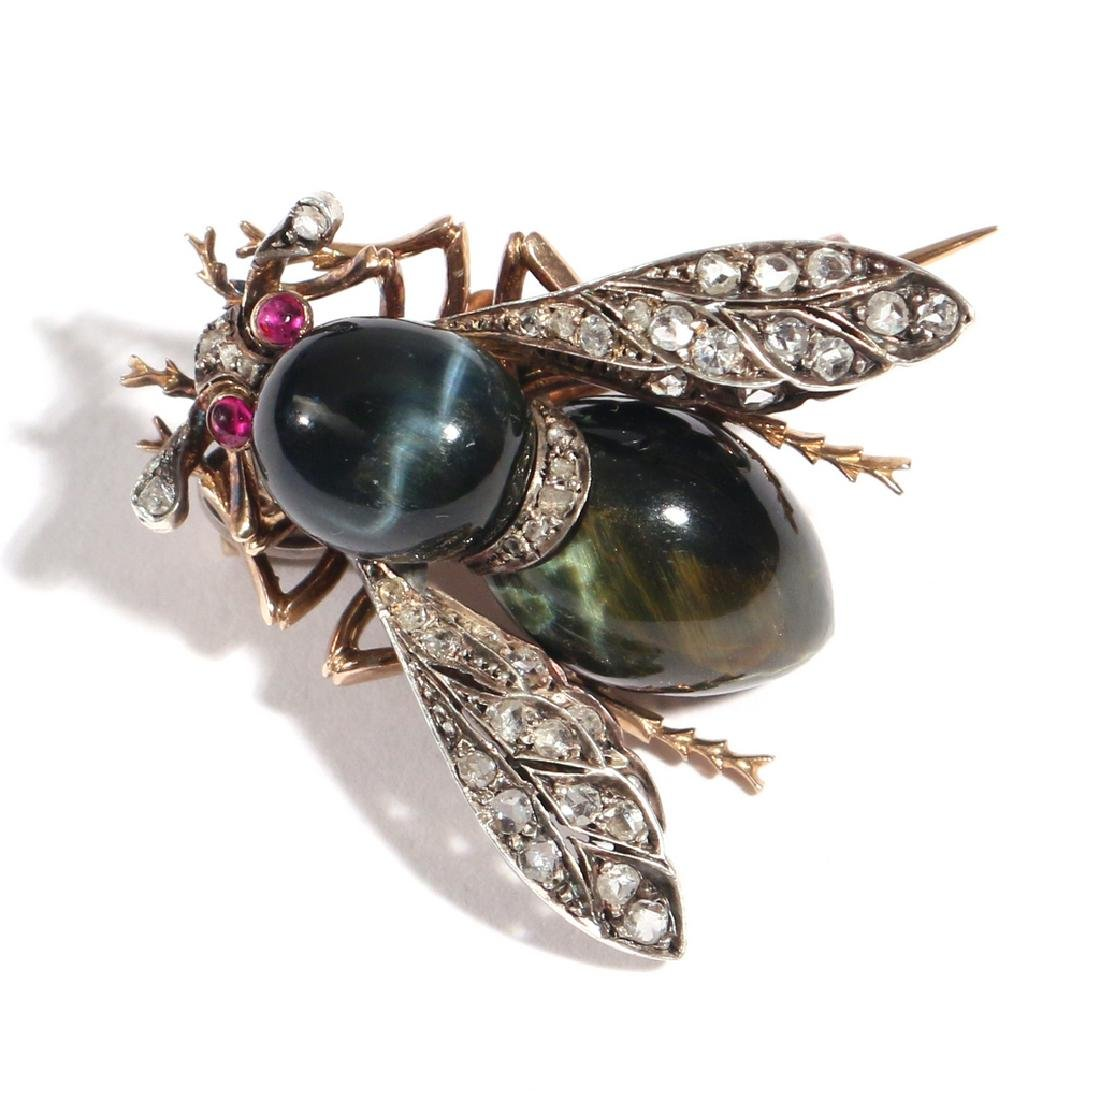 PHENOMENAL FRENCH NAPOLEONIC BEE PENDANT PIN - 4